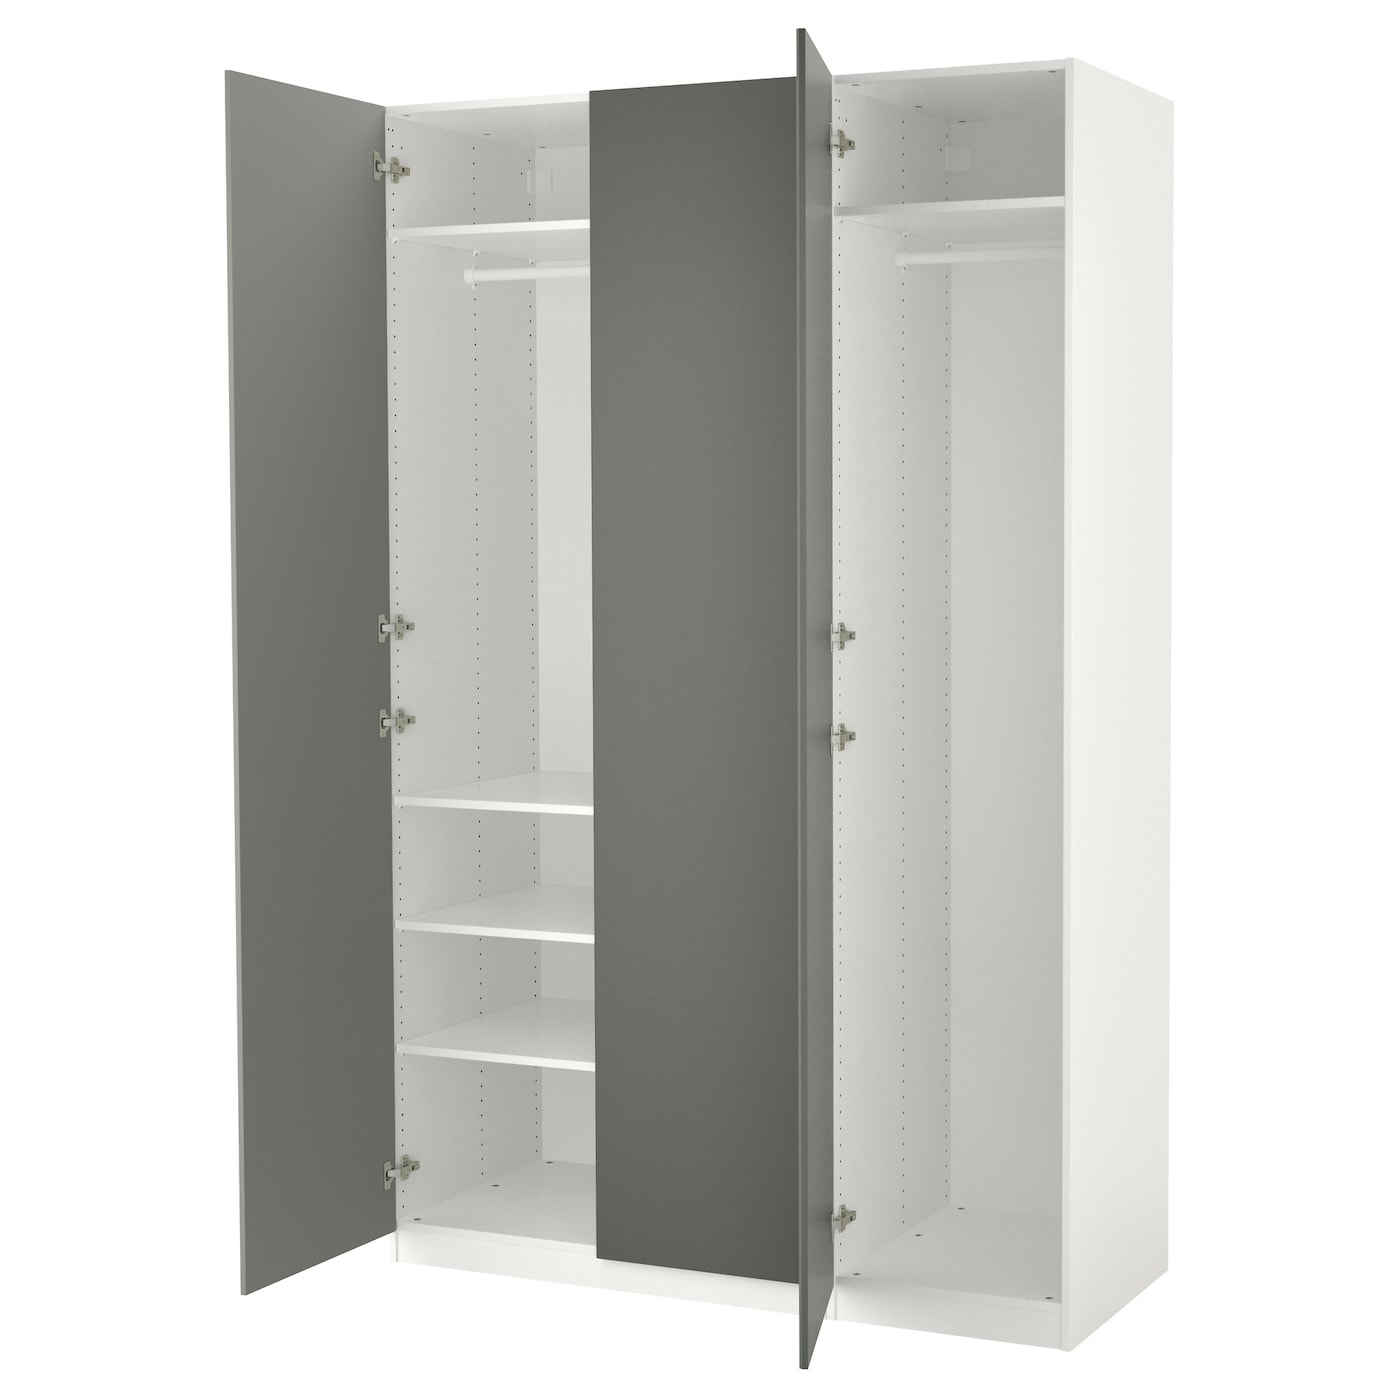 pax armoire penderie blanc reinsvoll gris vert 150x60x236. Black Bedroom Furniture Sets. Home Design Ideas